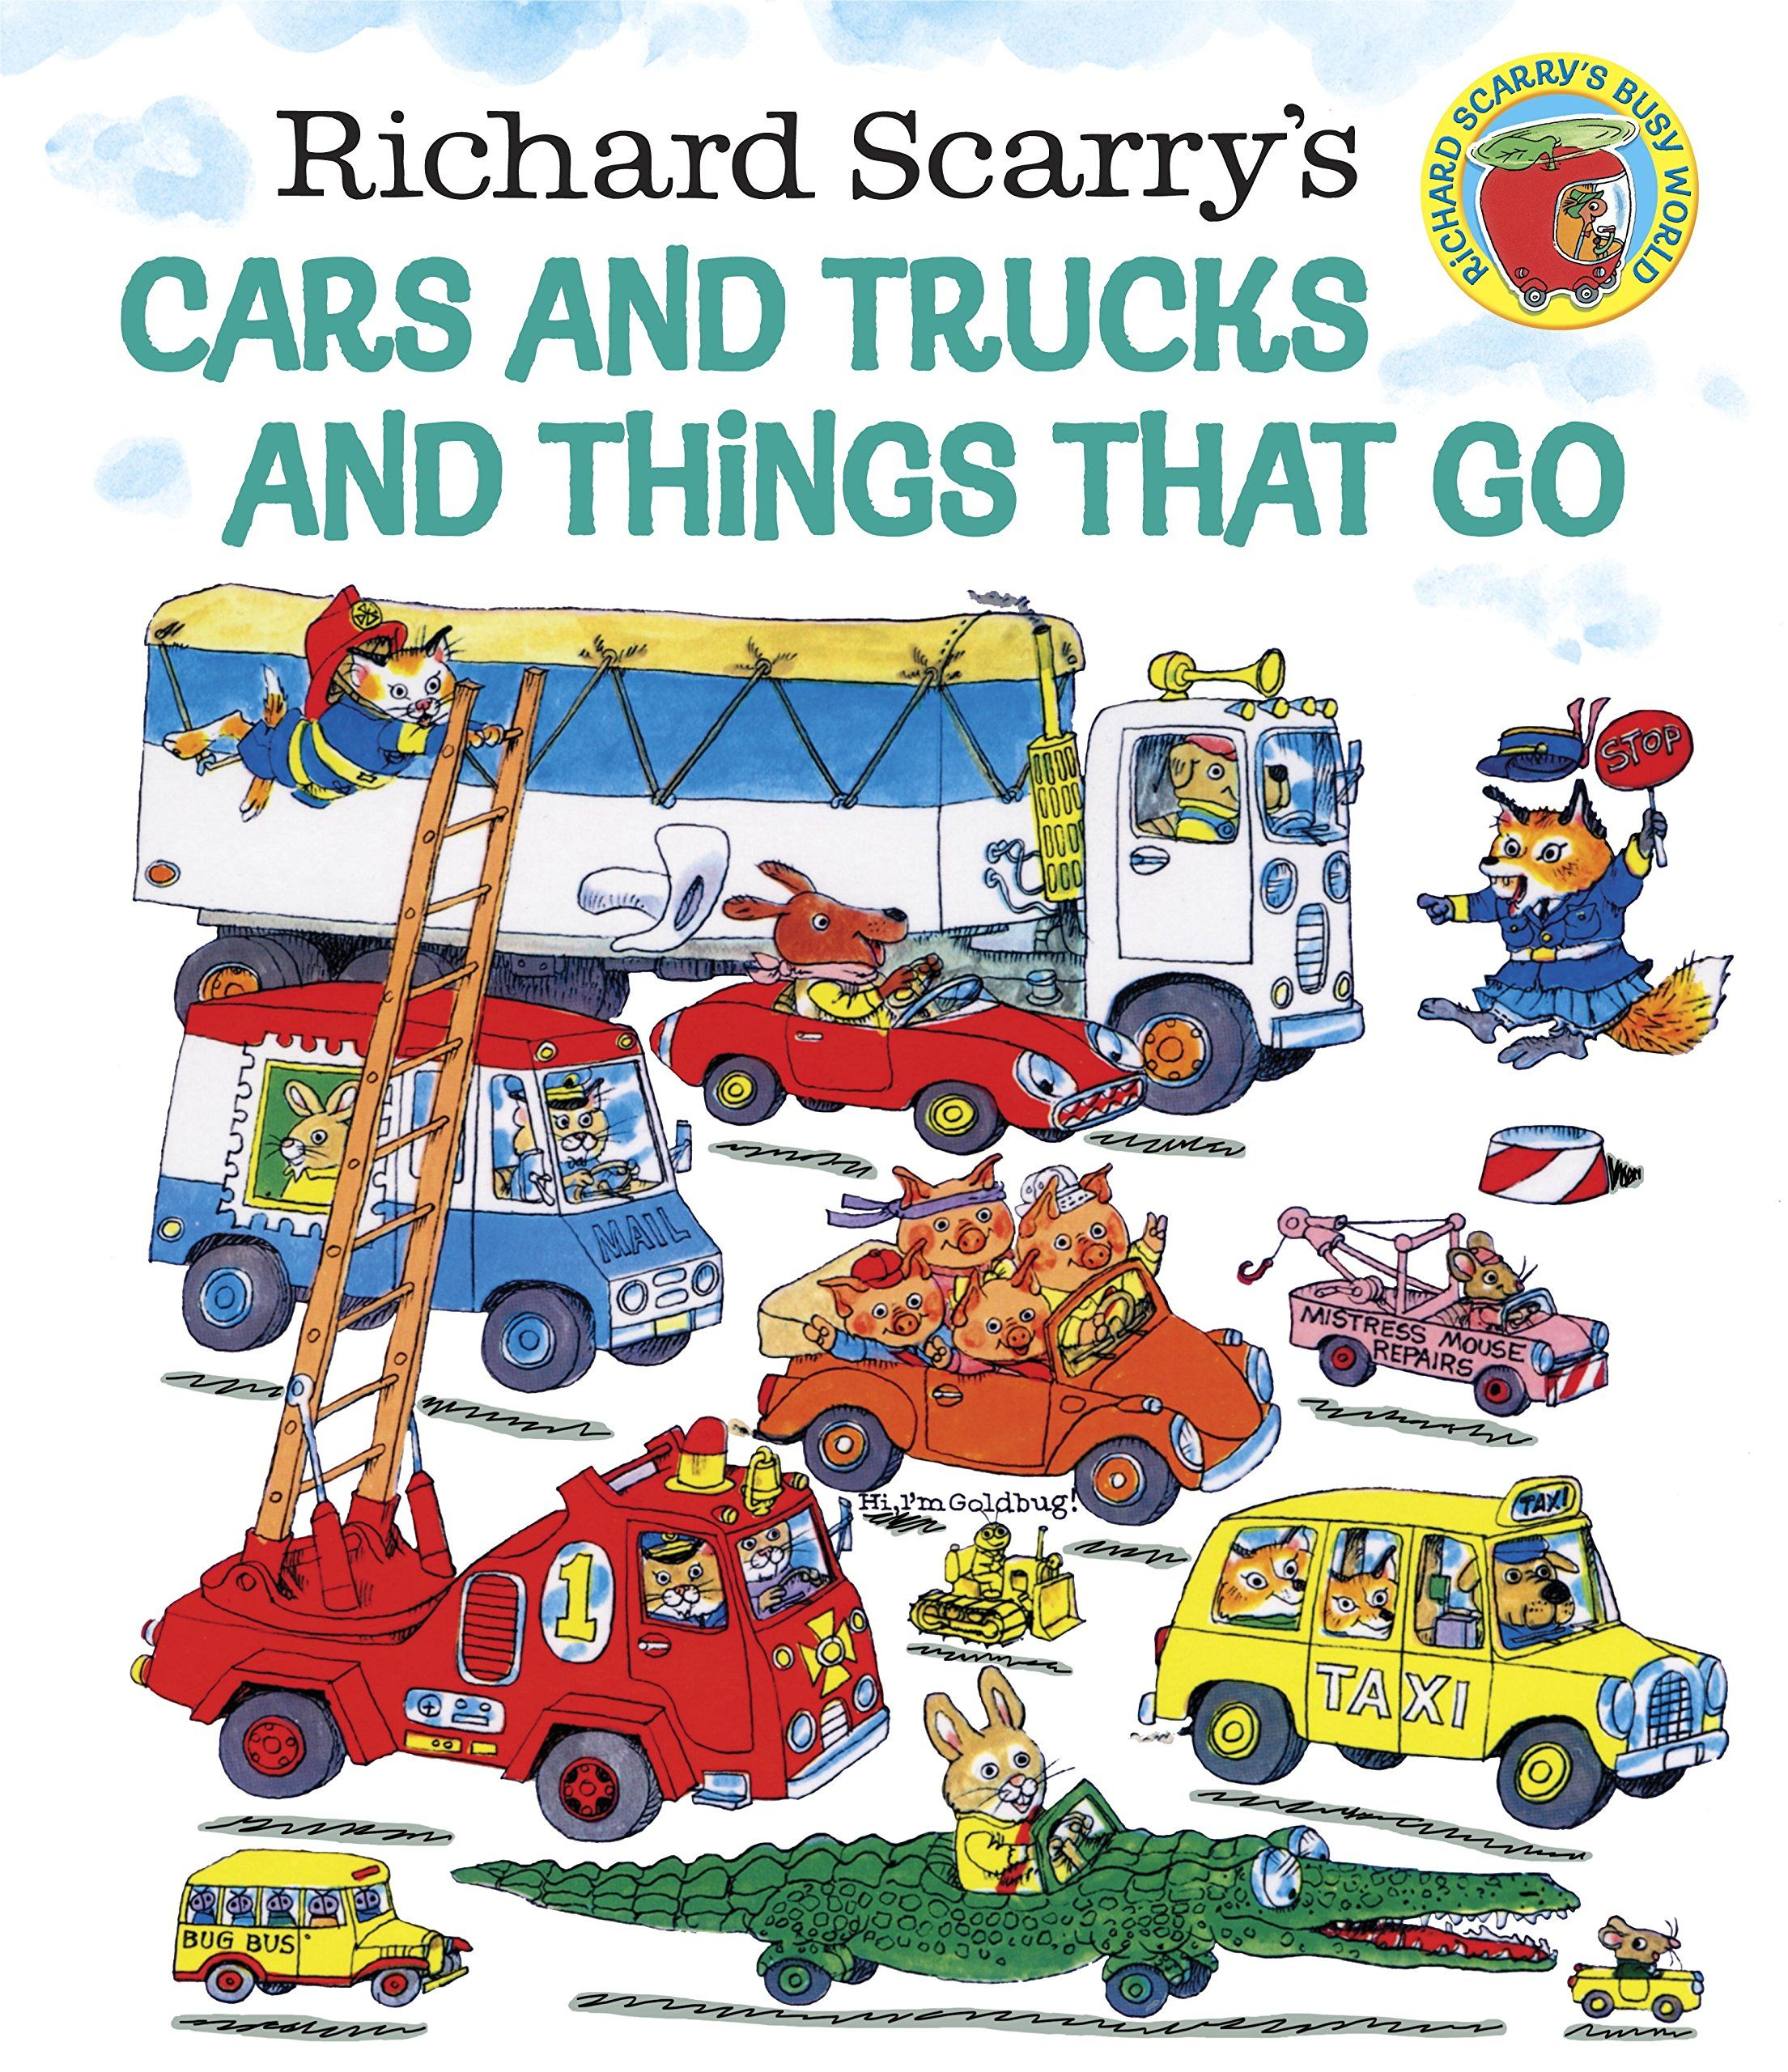 For jacks bday or xmas richard scarry books about